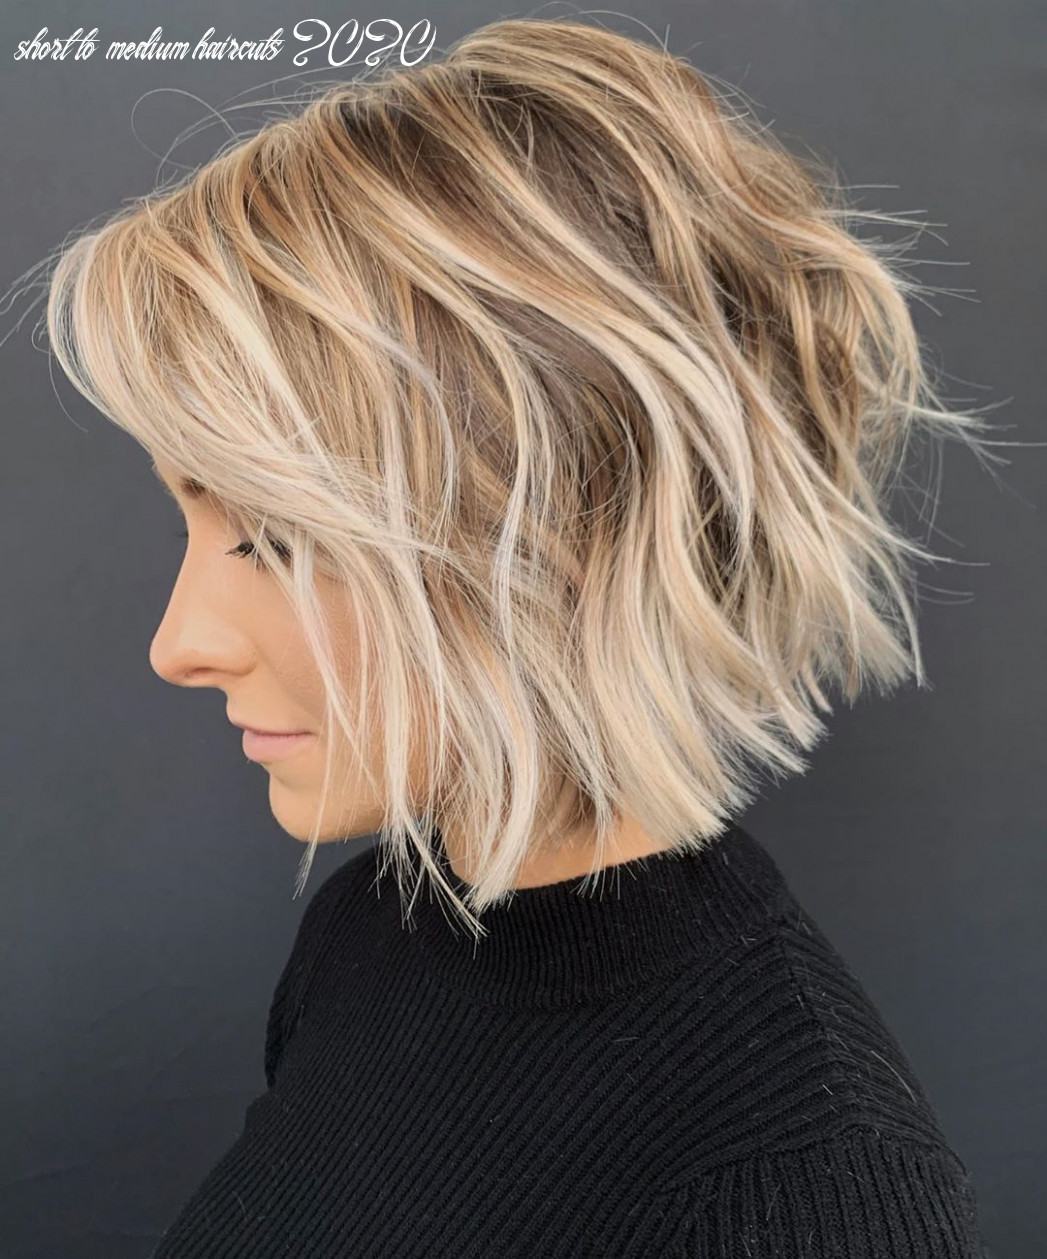 9 newest haircut ideas and haircut trends for 9 hair adviser short to medium haircuts 2020